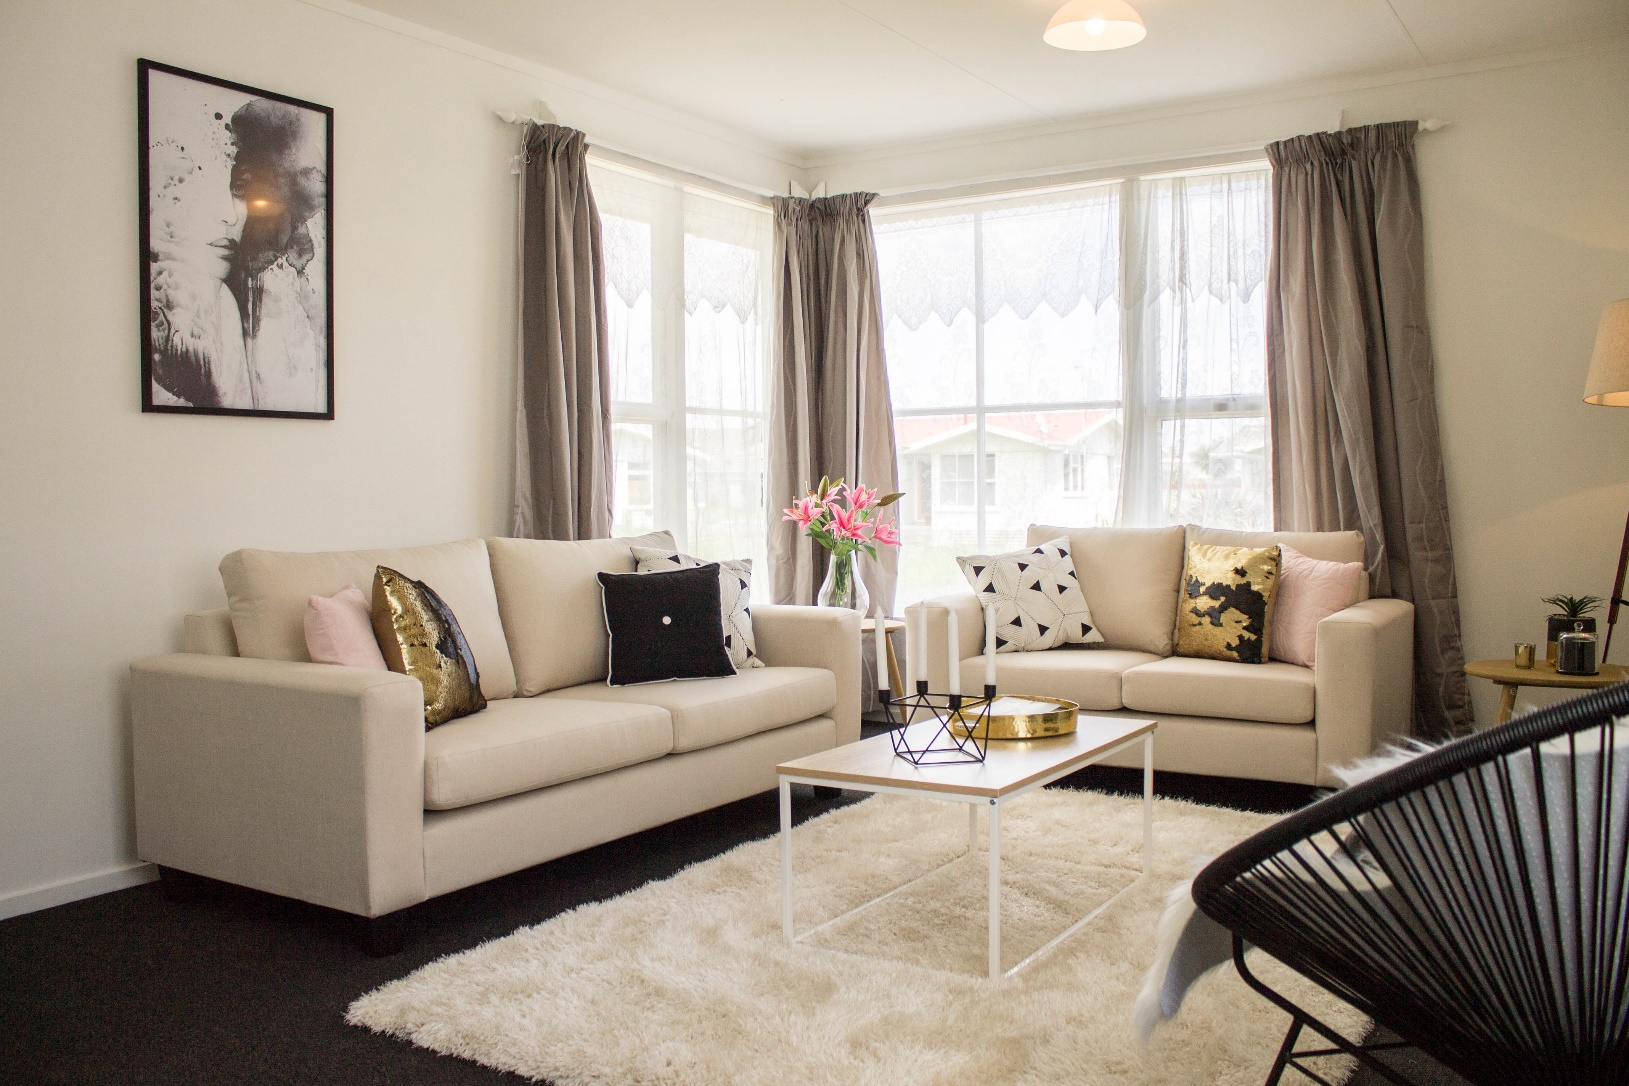 A homestaged lounge room with couches, a rug and accessories